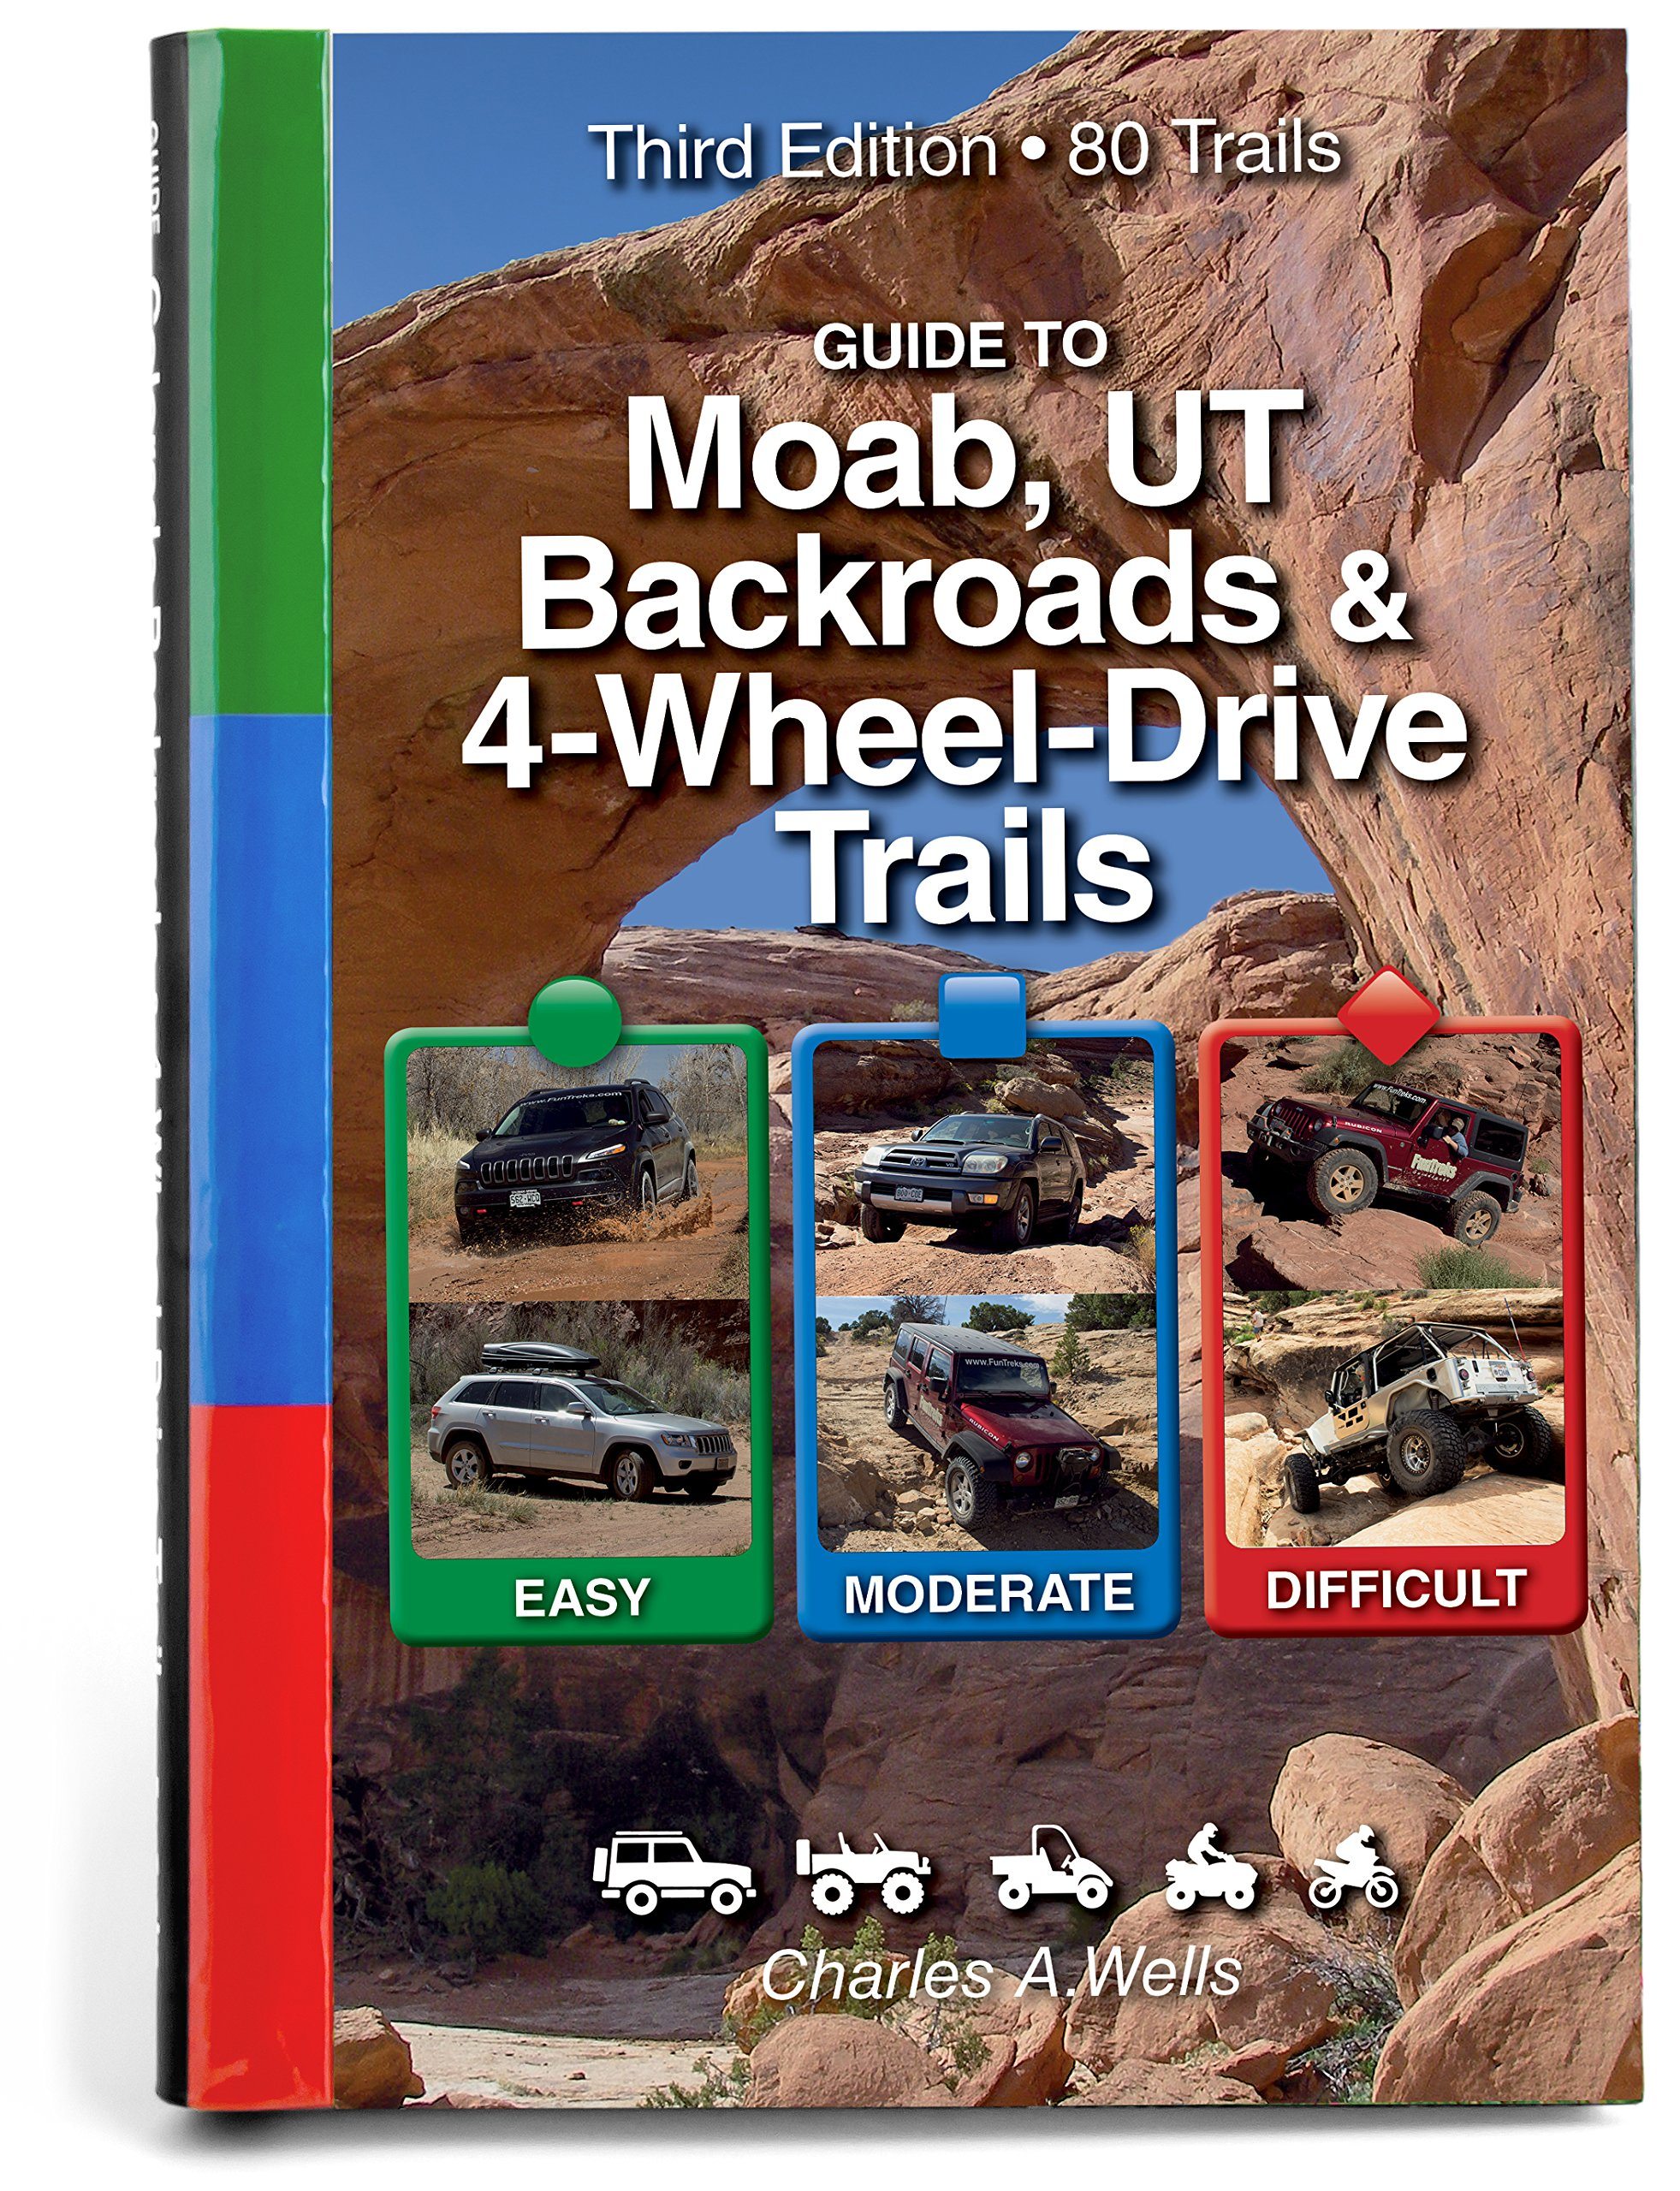 Guide to Moab, UT Backroads & 4-Wheel-Drive Trails 3rd Edition by Funtreks Inc